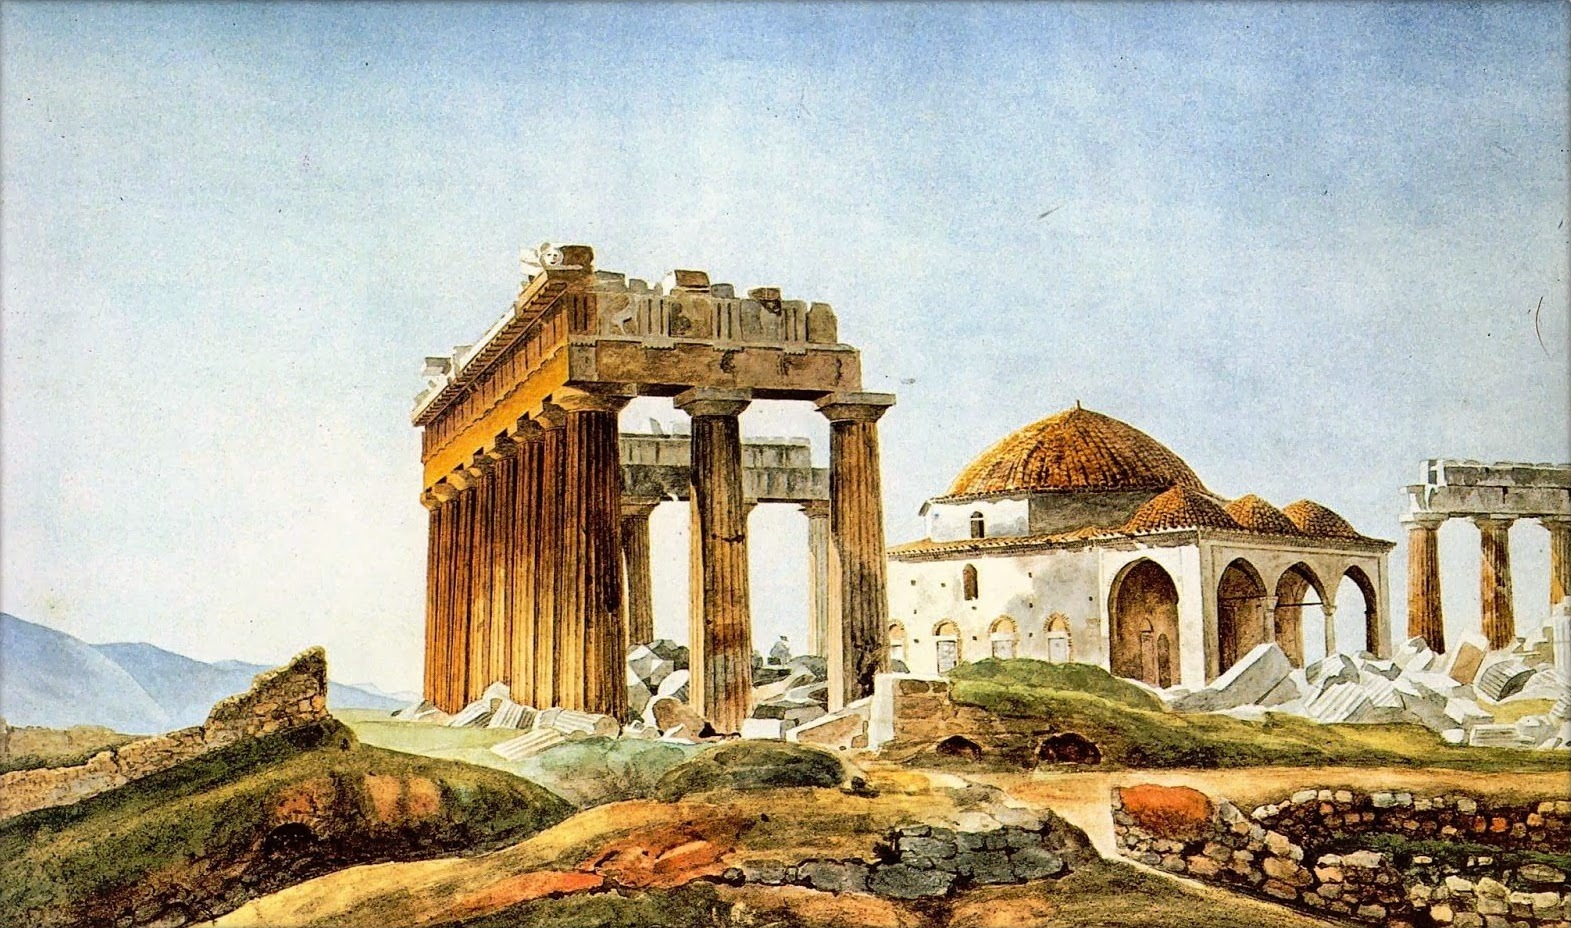 Peytier_-_Mosque_in_the_Parthenon.jpg#asset:5286